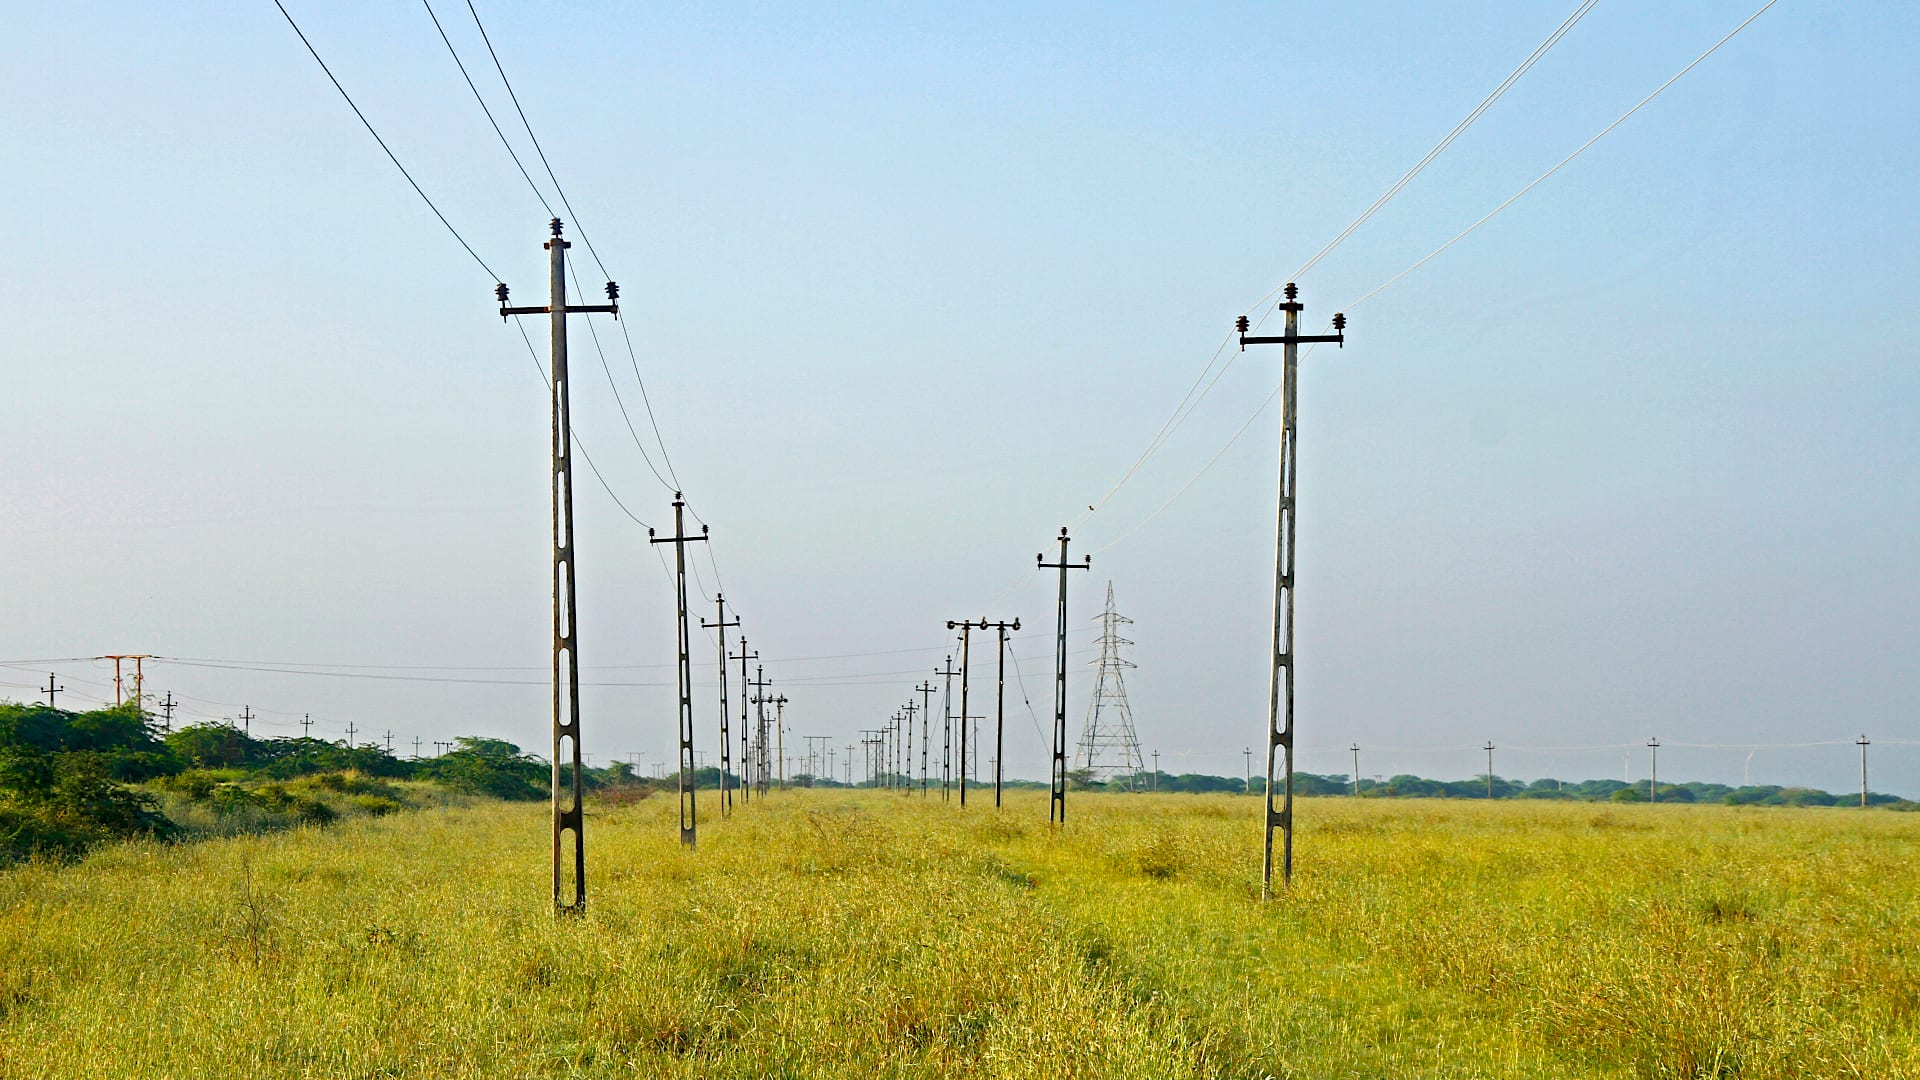 Transmission lines at the Naliya grassland in Kutch puts the critically endangered great Indian bustard at risk